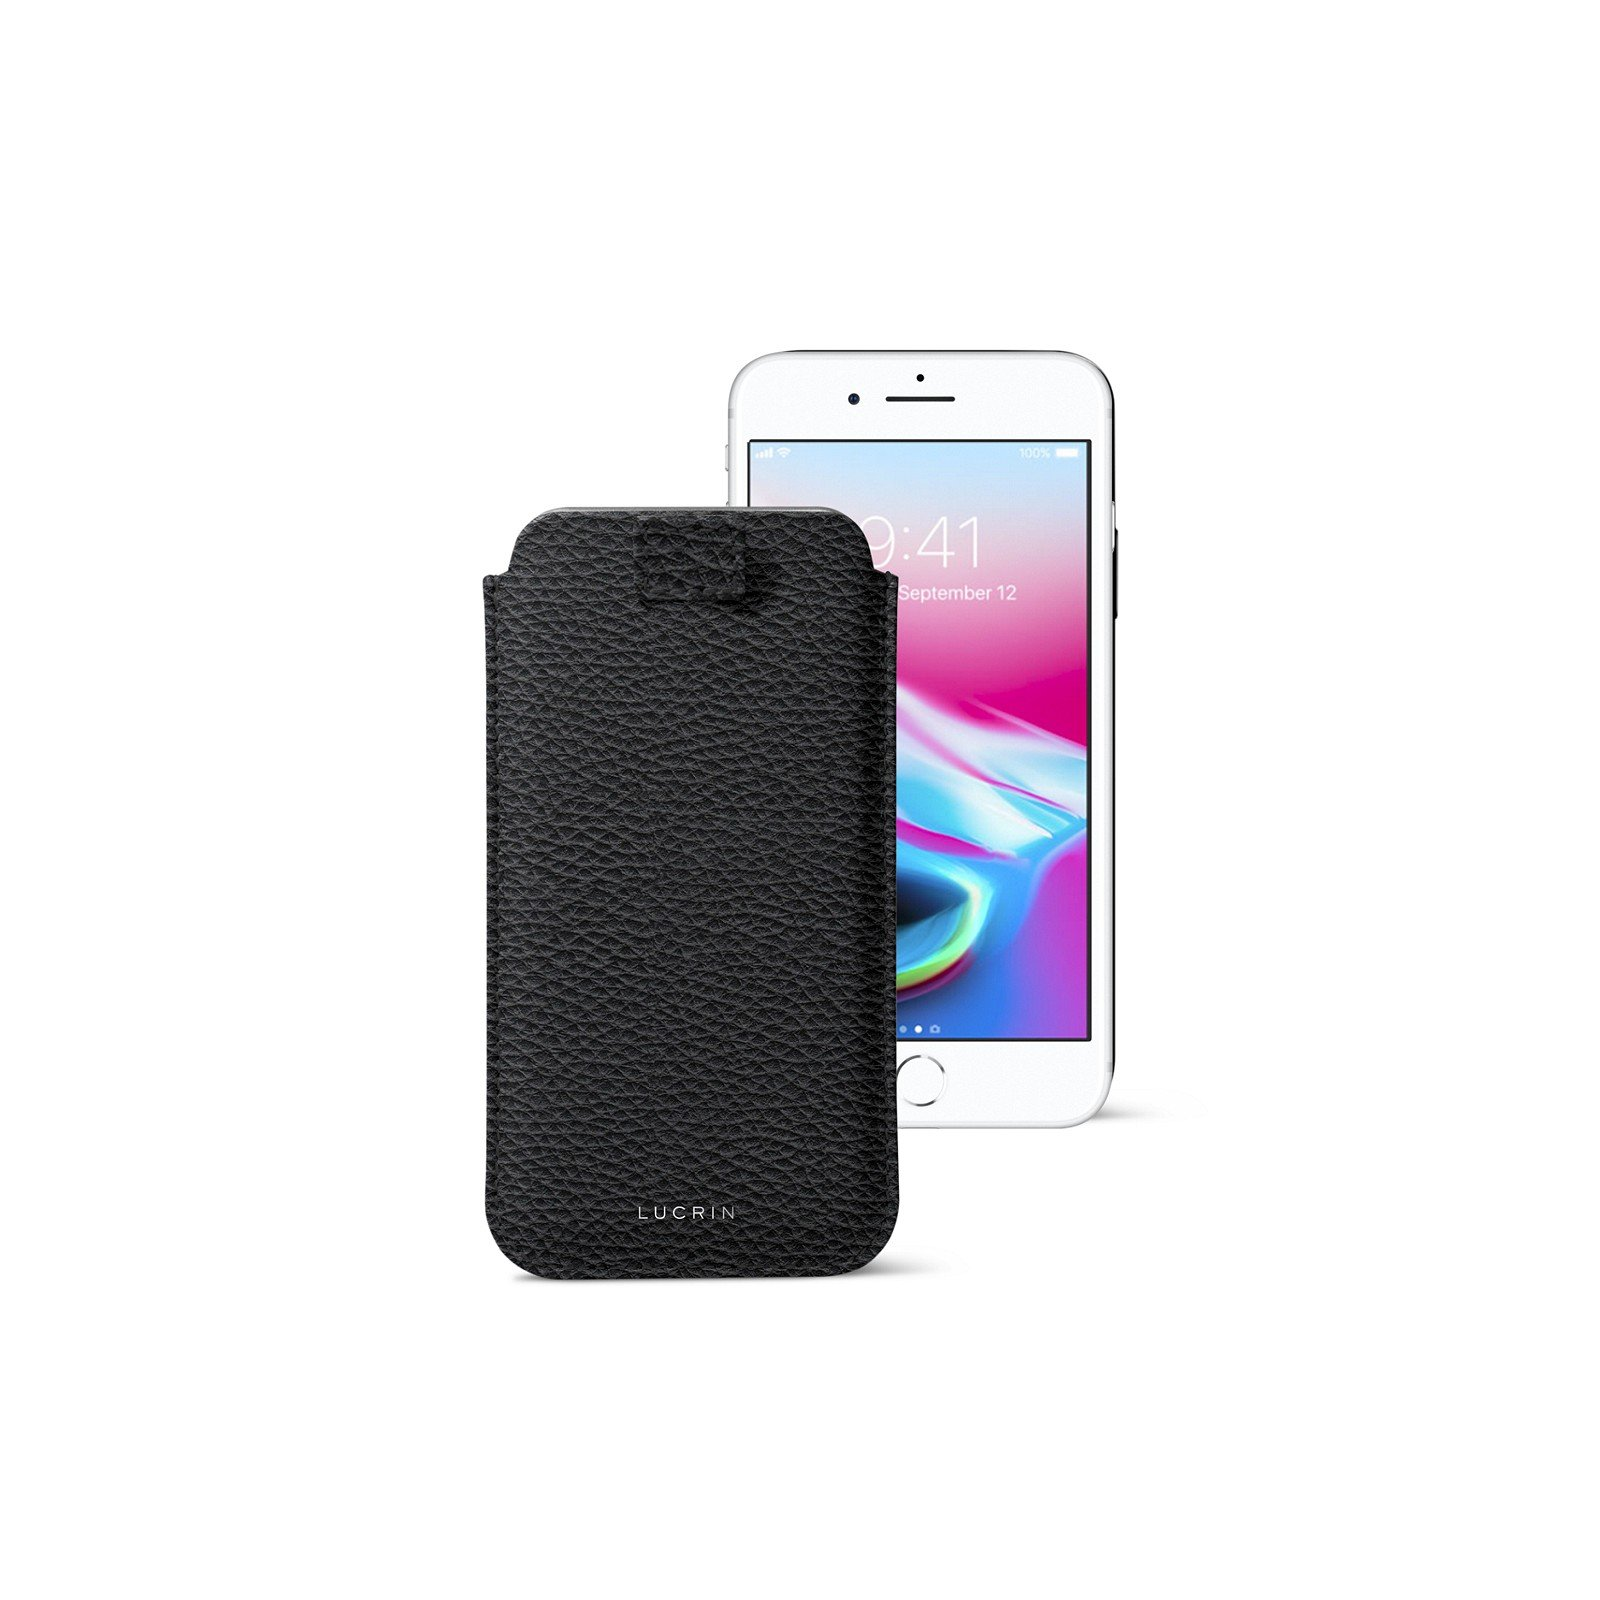 Lucrin - iPhone 8/7/ 6 Ultra Slim Compatible Sleeve, Protective Soft Case with Pull-Up Strap - Black - Granulated Leather